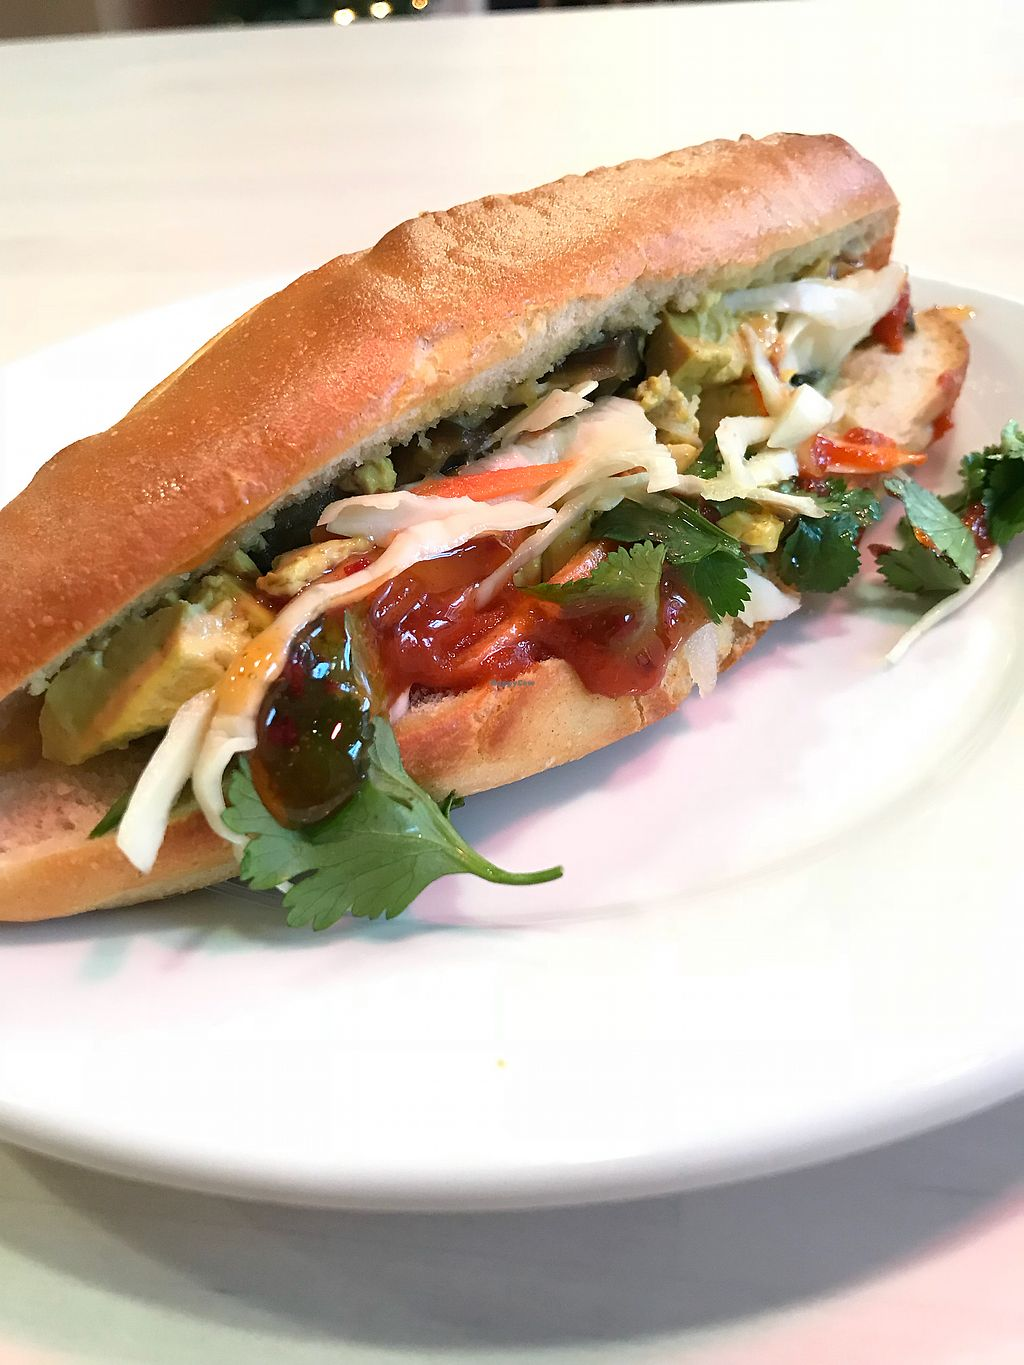 """Photo of Time Banhmi  by <a href=""""/members/profile/schumacher62"""">schumacher62</a> <br/>ninja tofu banh mi! <br/> November 19, 2017  - <a href='/contact/abuse/image/74592/326943'>Report</a>"""